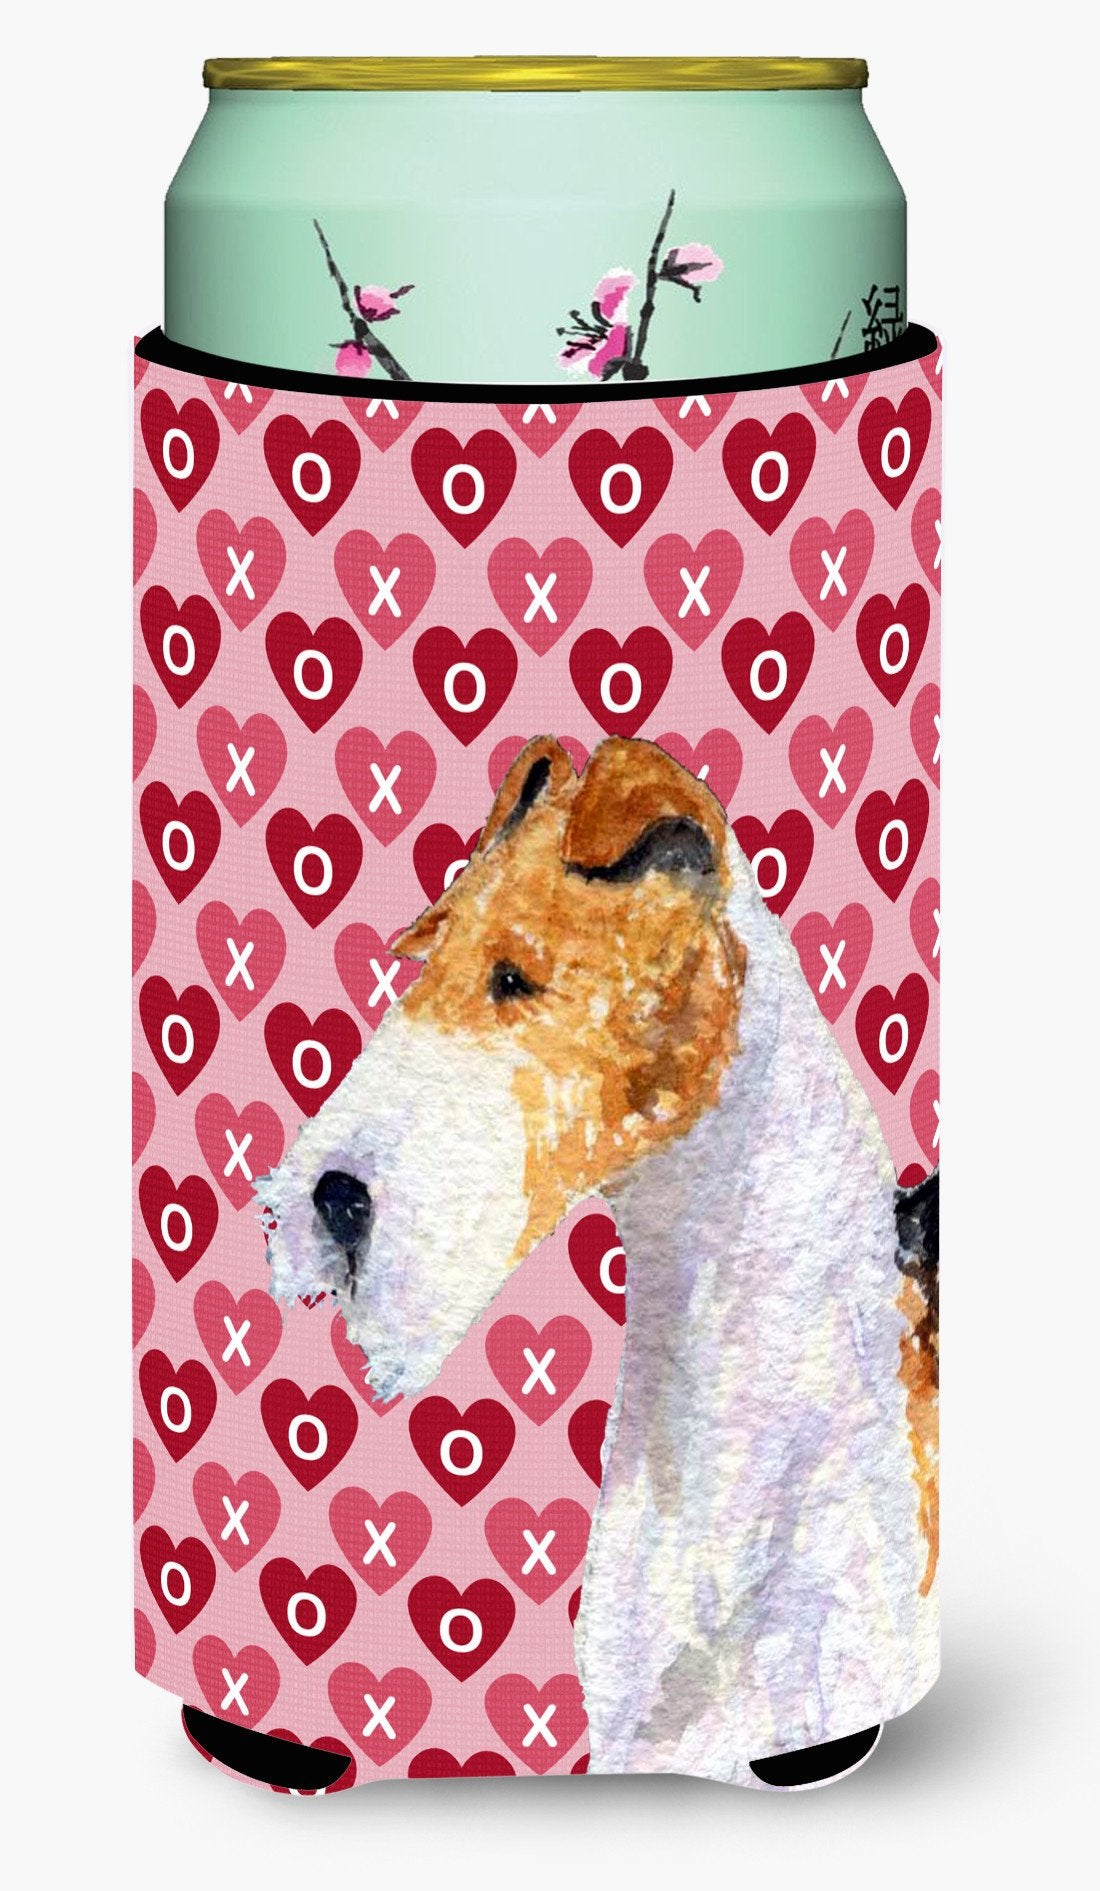 Fox Terrier Hearts Love and Valentine's Day Portrait  Tall Boy Beverage Insulator Beverage Insulator Hugger by Caroline's Treasures